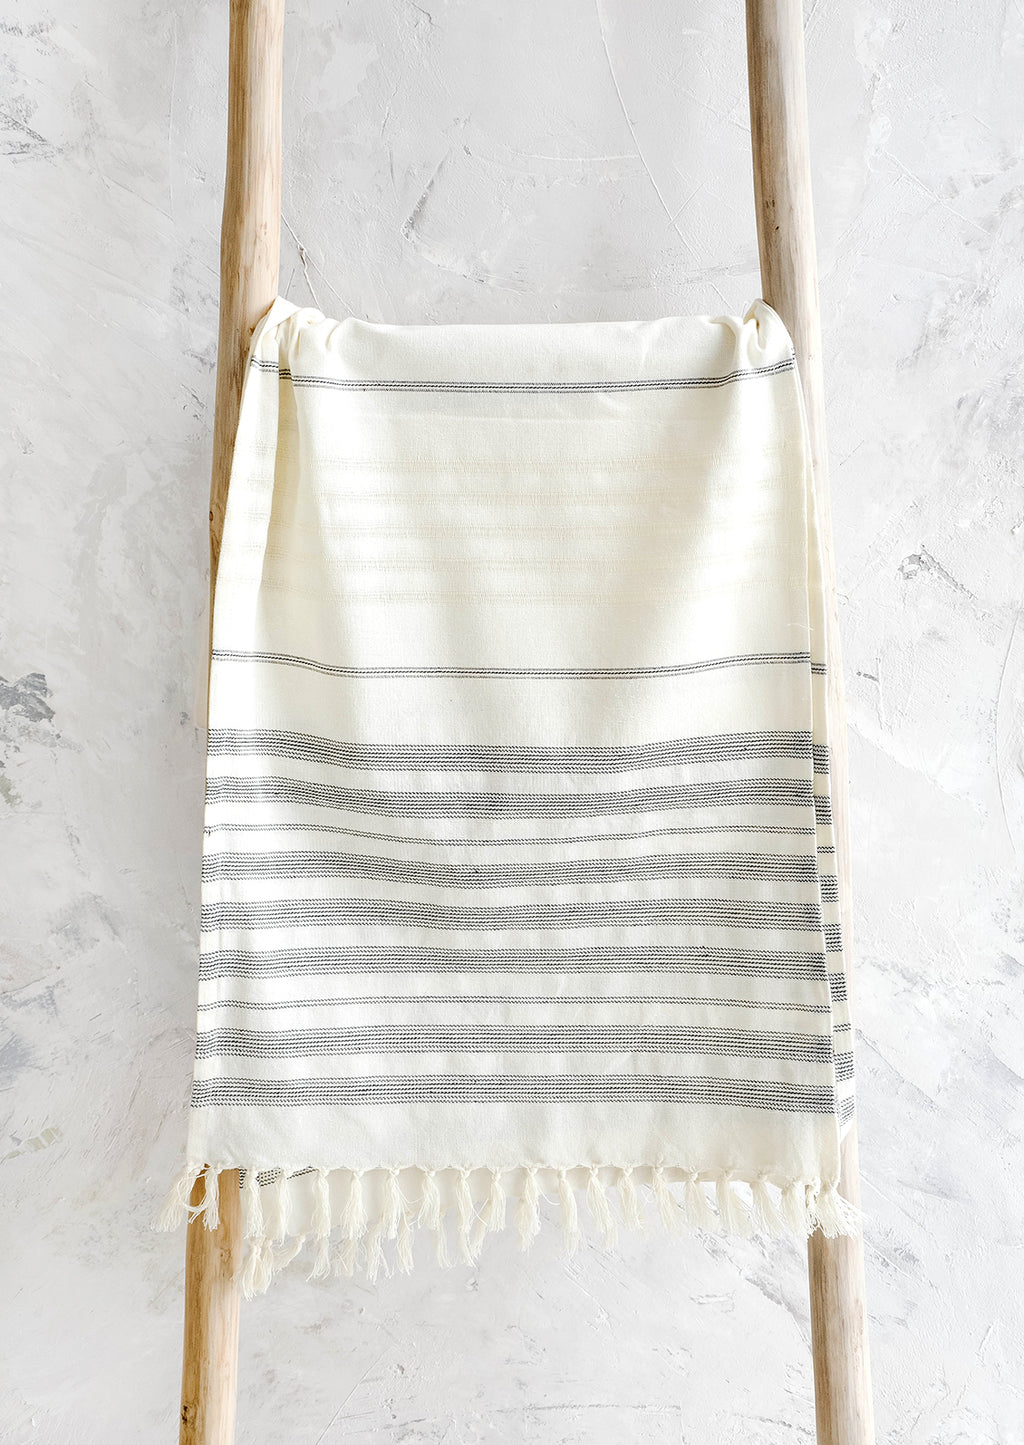 1: Ivory and black striped woven cotton table runner hanging on a wooden ladder